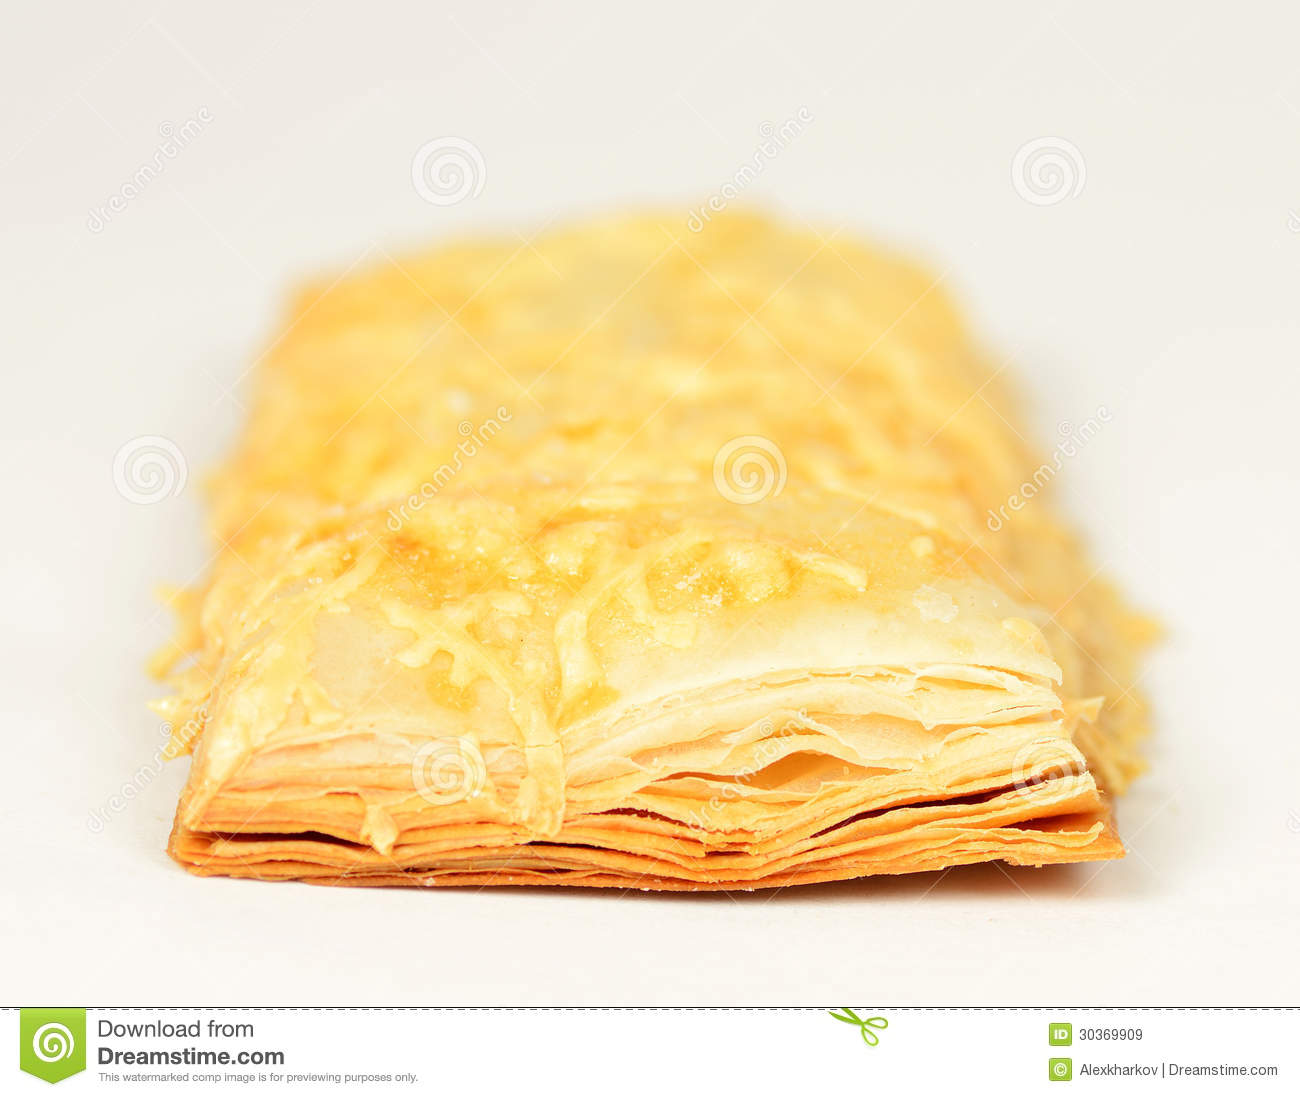 Puff Pastry Royalty Free Stock Images - Image: 30369909